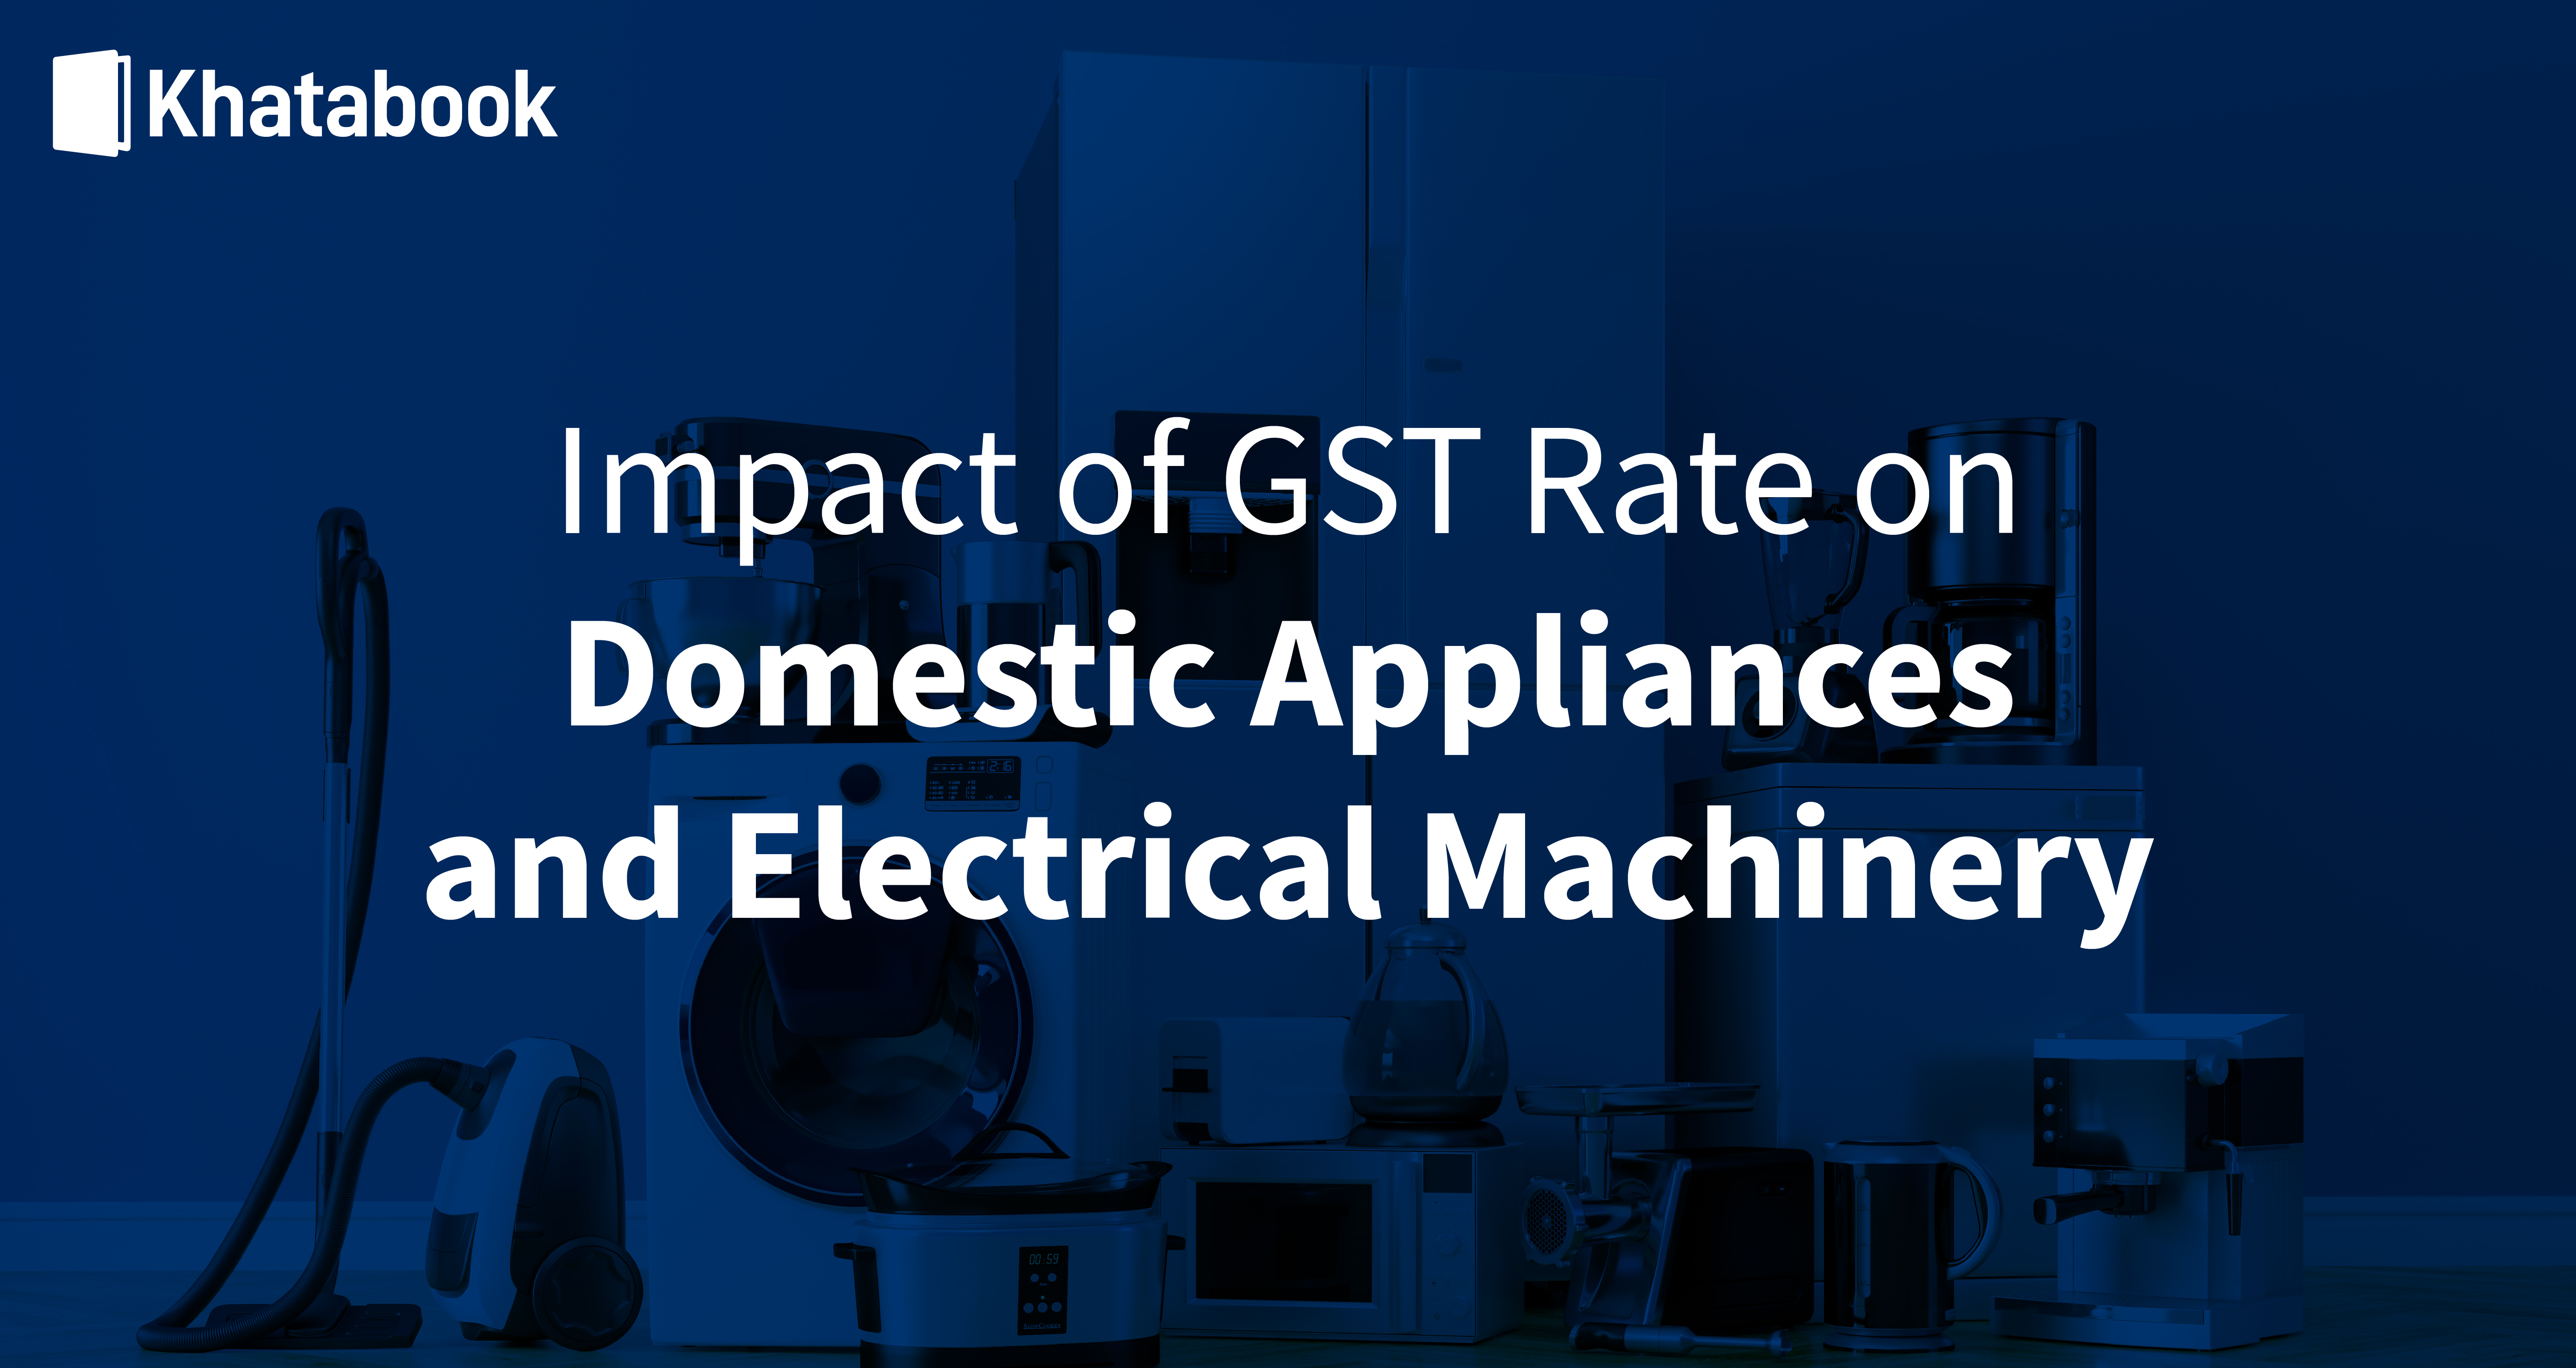 Effect of GST rate on Domestic Appliances and Electrical Machinery